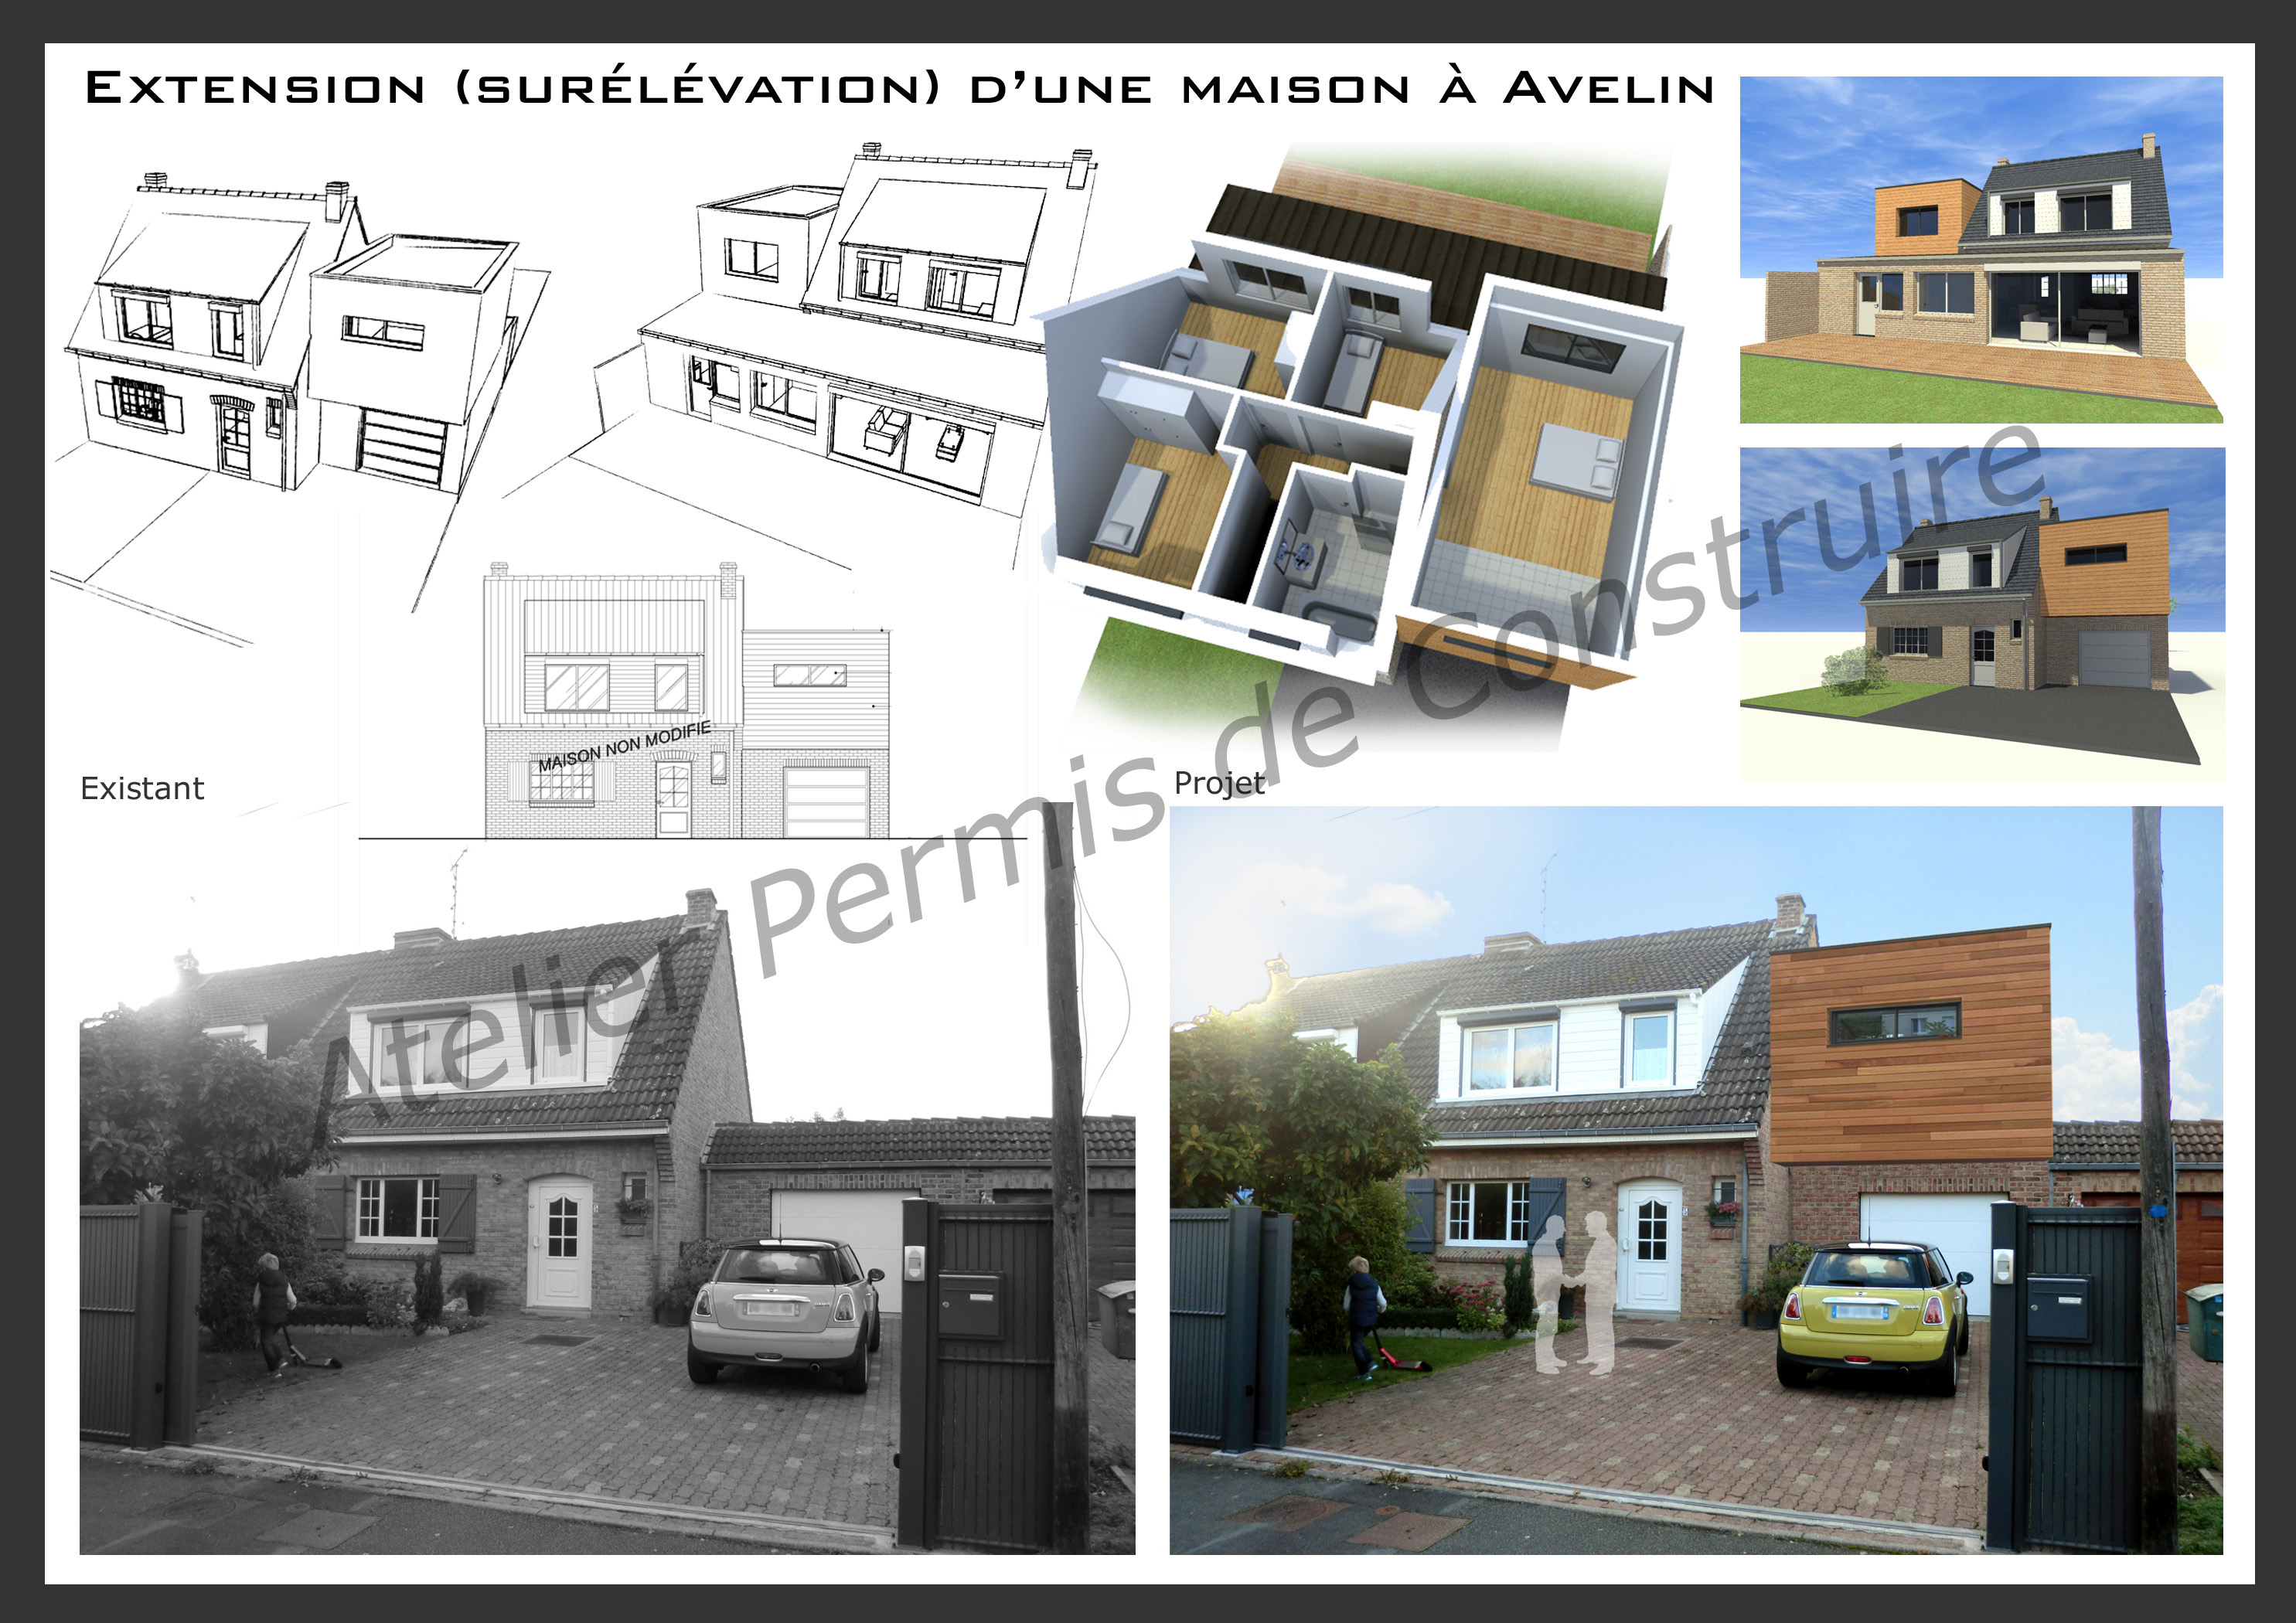 Extension d 39 une maison sur l vation avelin for Permis de construire extension maison